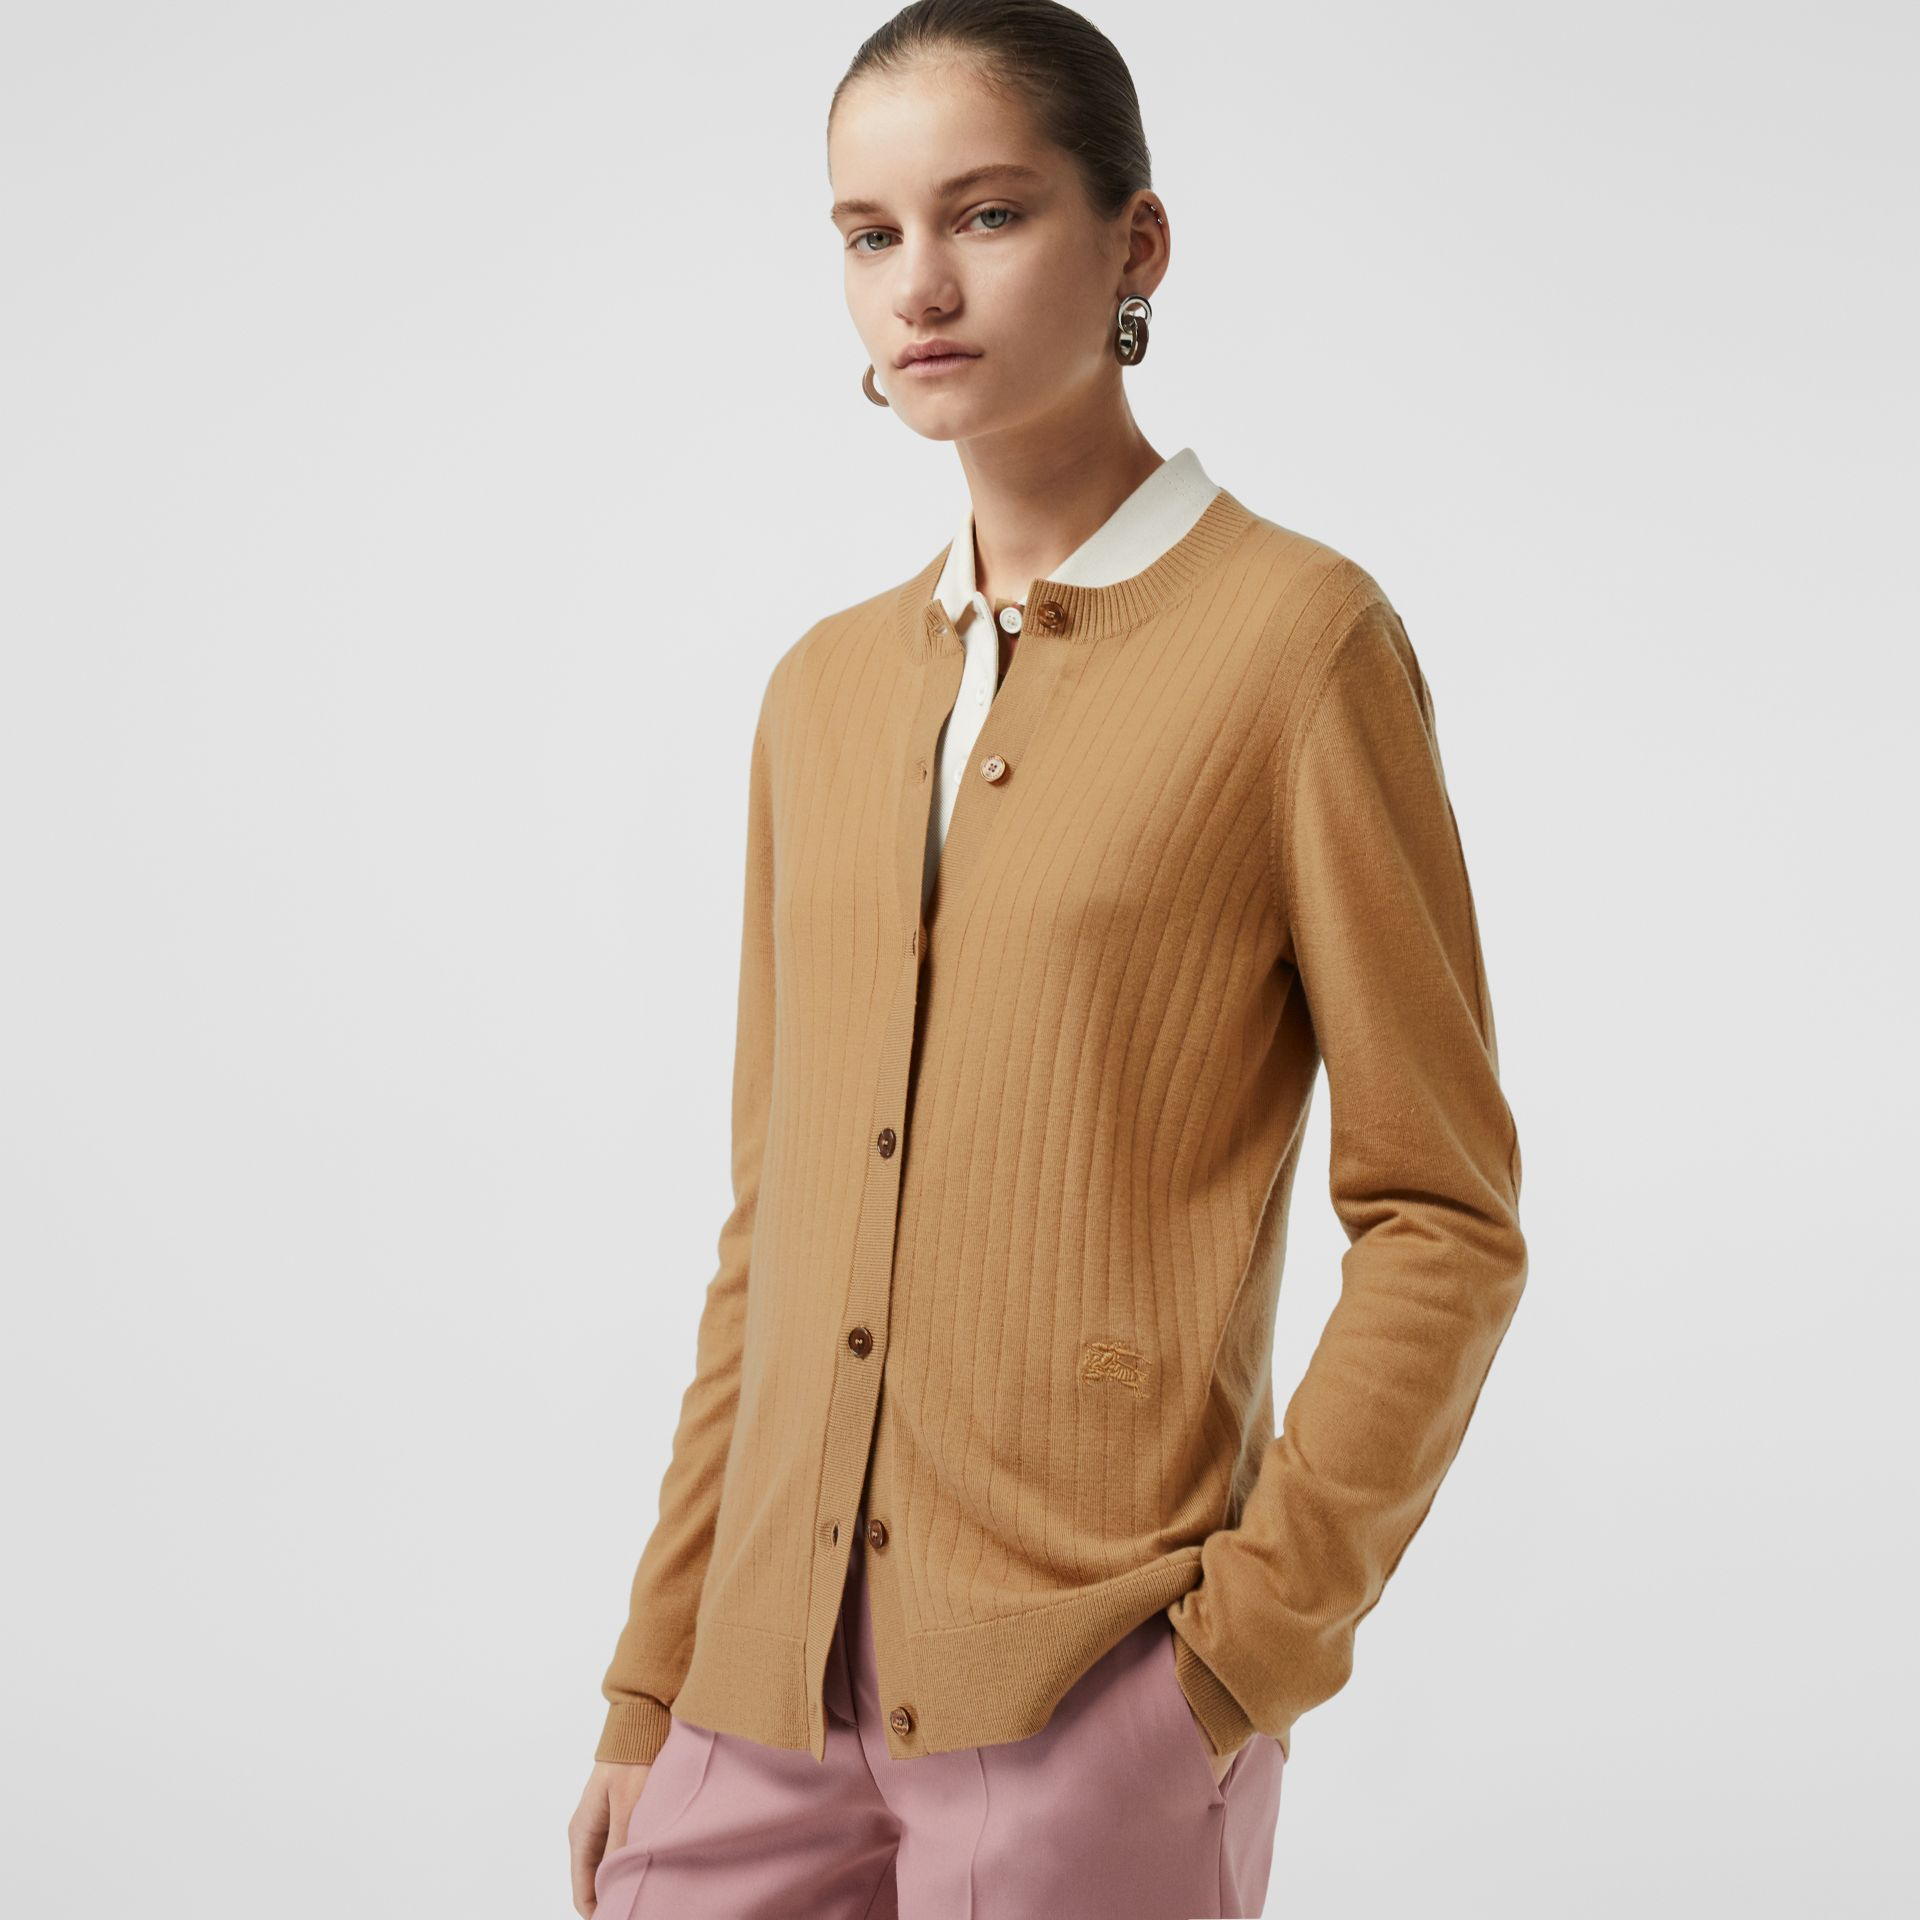 Rib Knit Cashmere Cardigan in Camel - Women | Burberry Hong Kong - gallery image 4